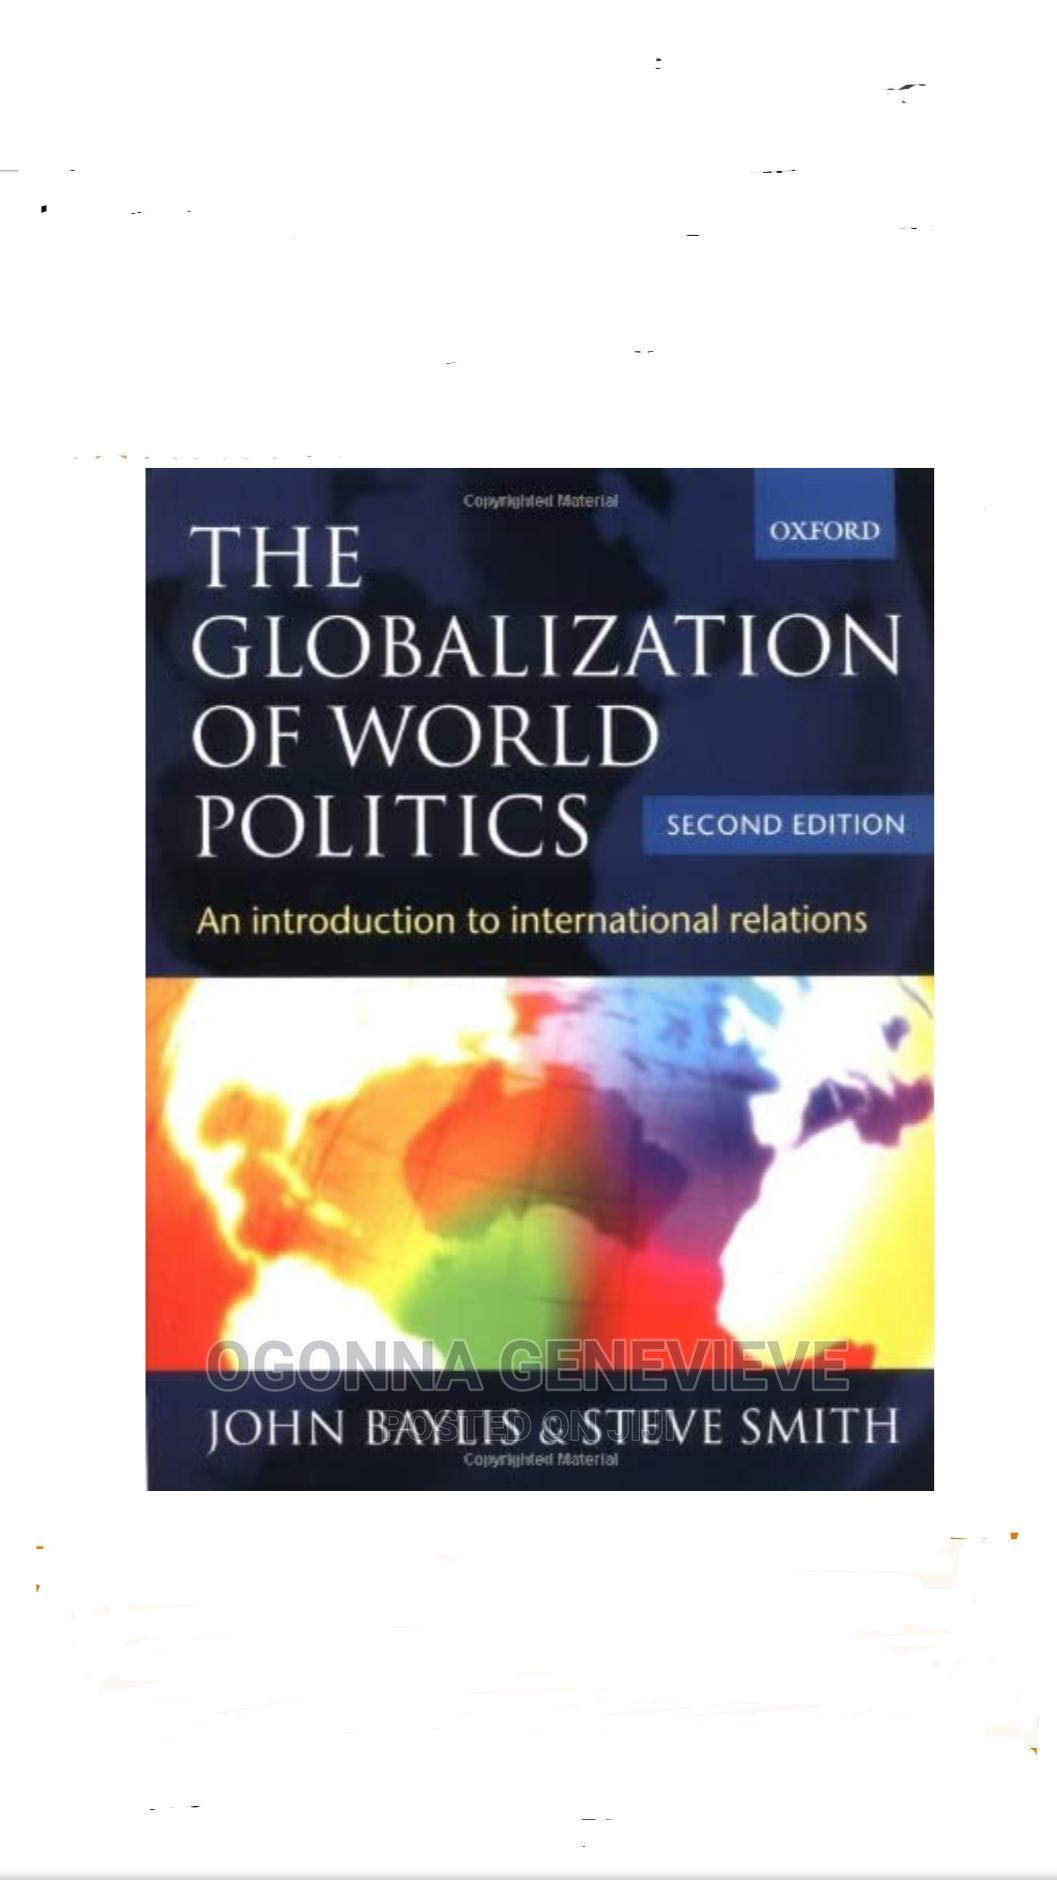 The Globalization of World Politics 2nd Edition